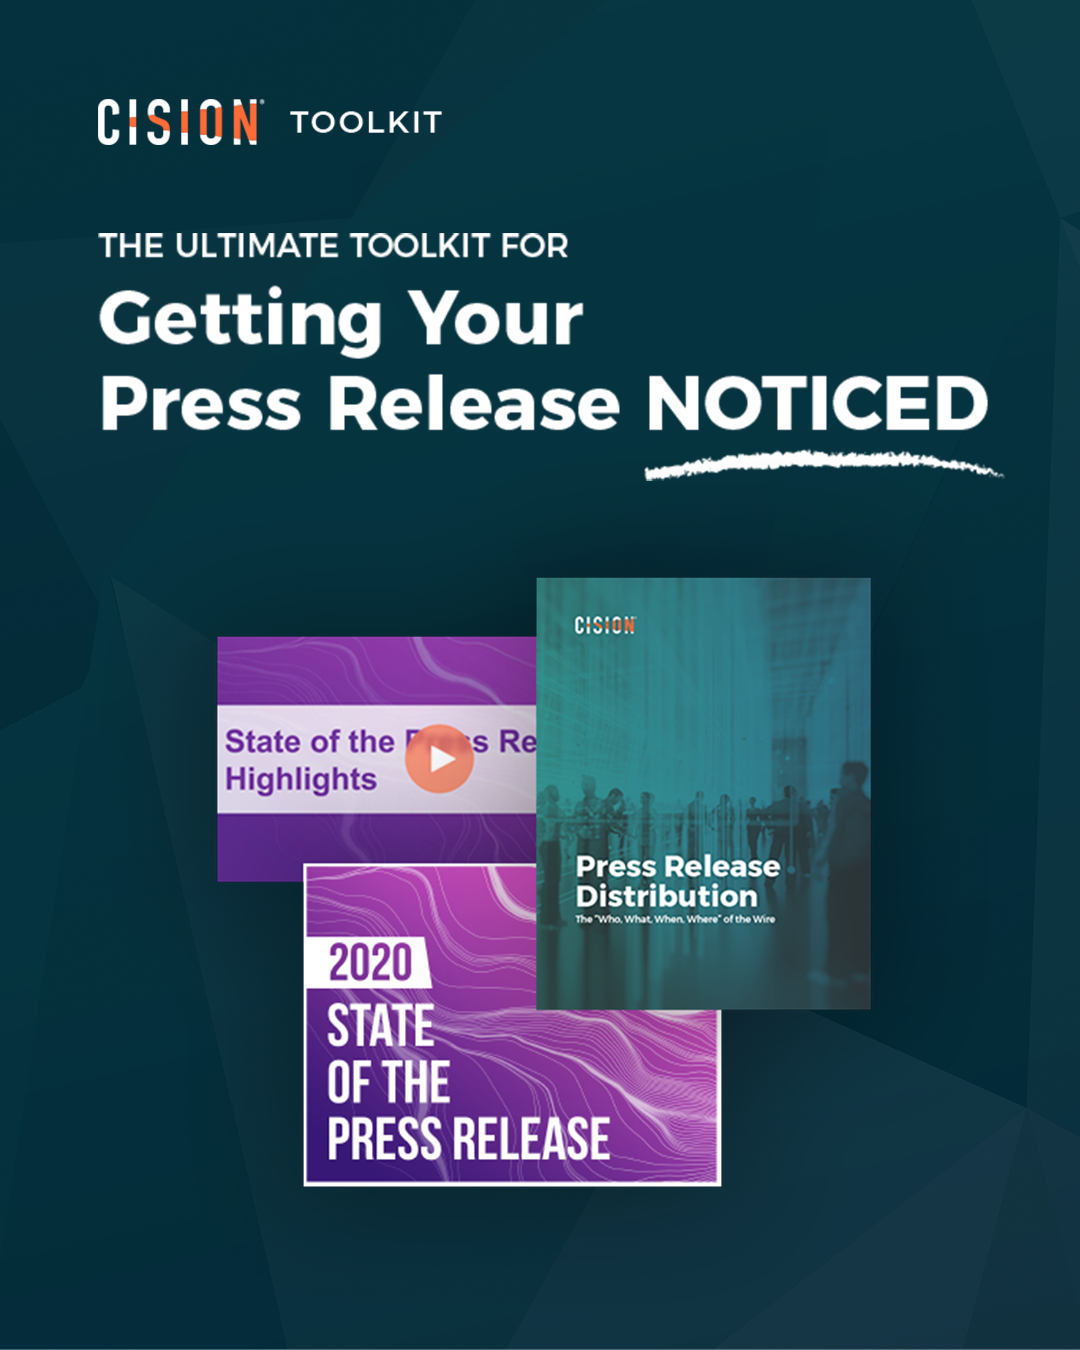 The Ultimate Toolkit for Getting Your Press Release Noticed